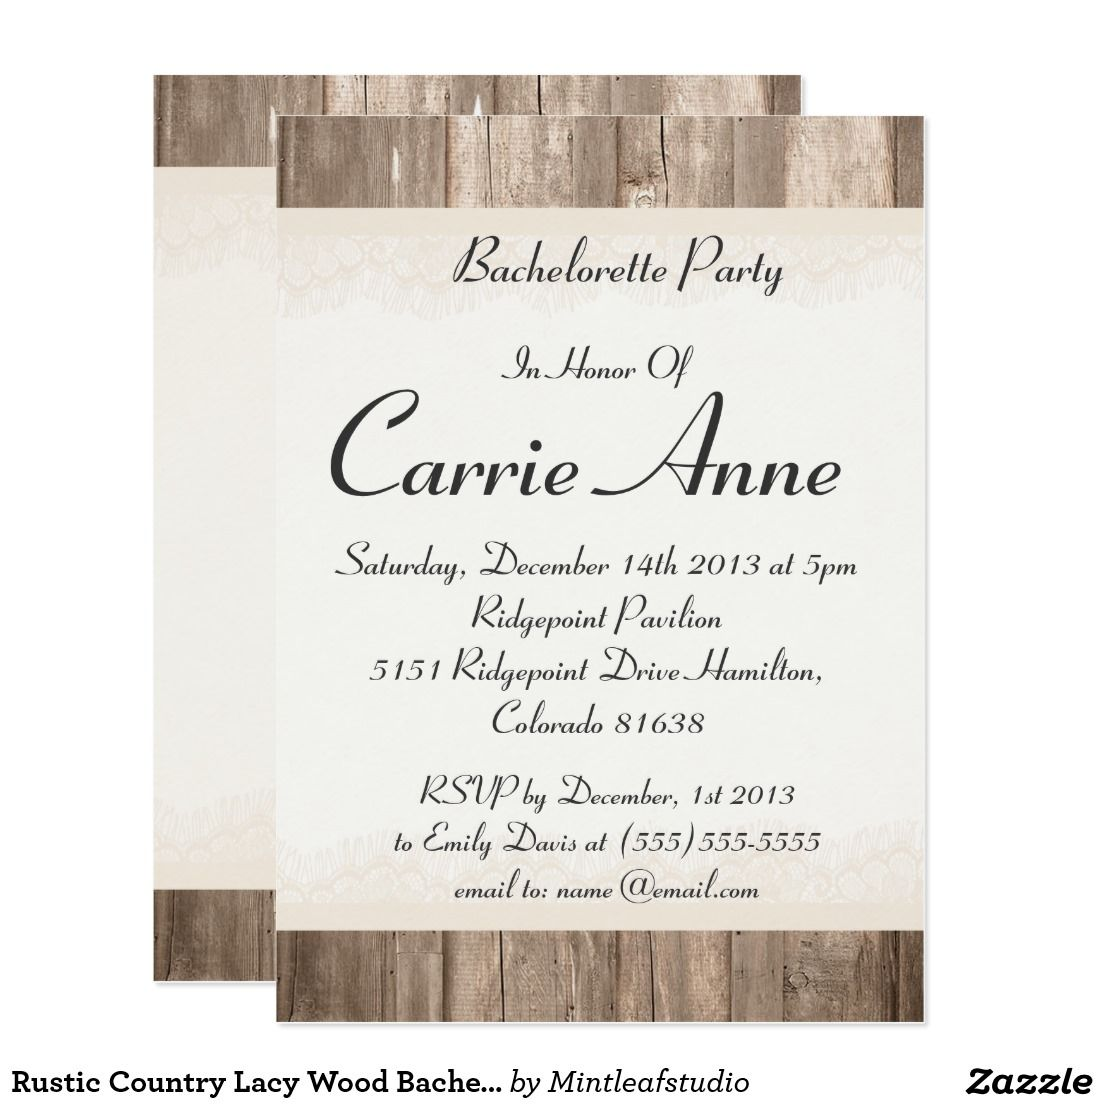 Rustic Country Lacy Wood Bachelorette Party Invite | Bachelorette ...